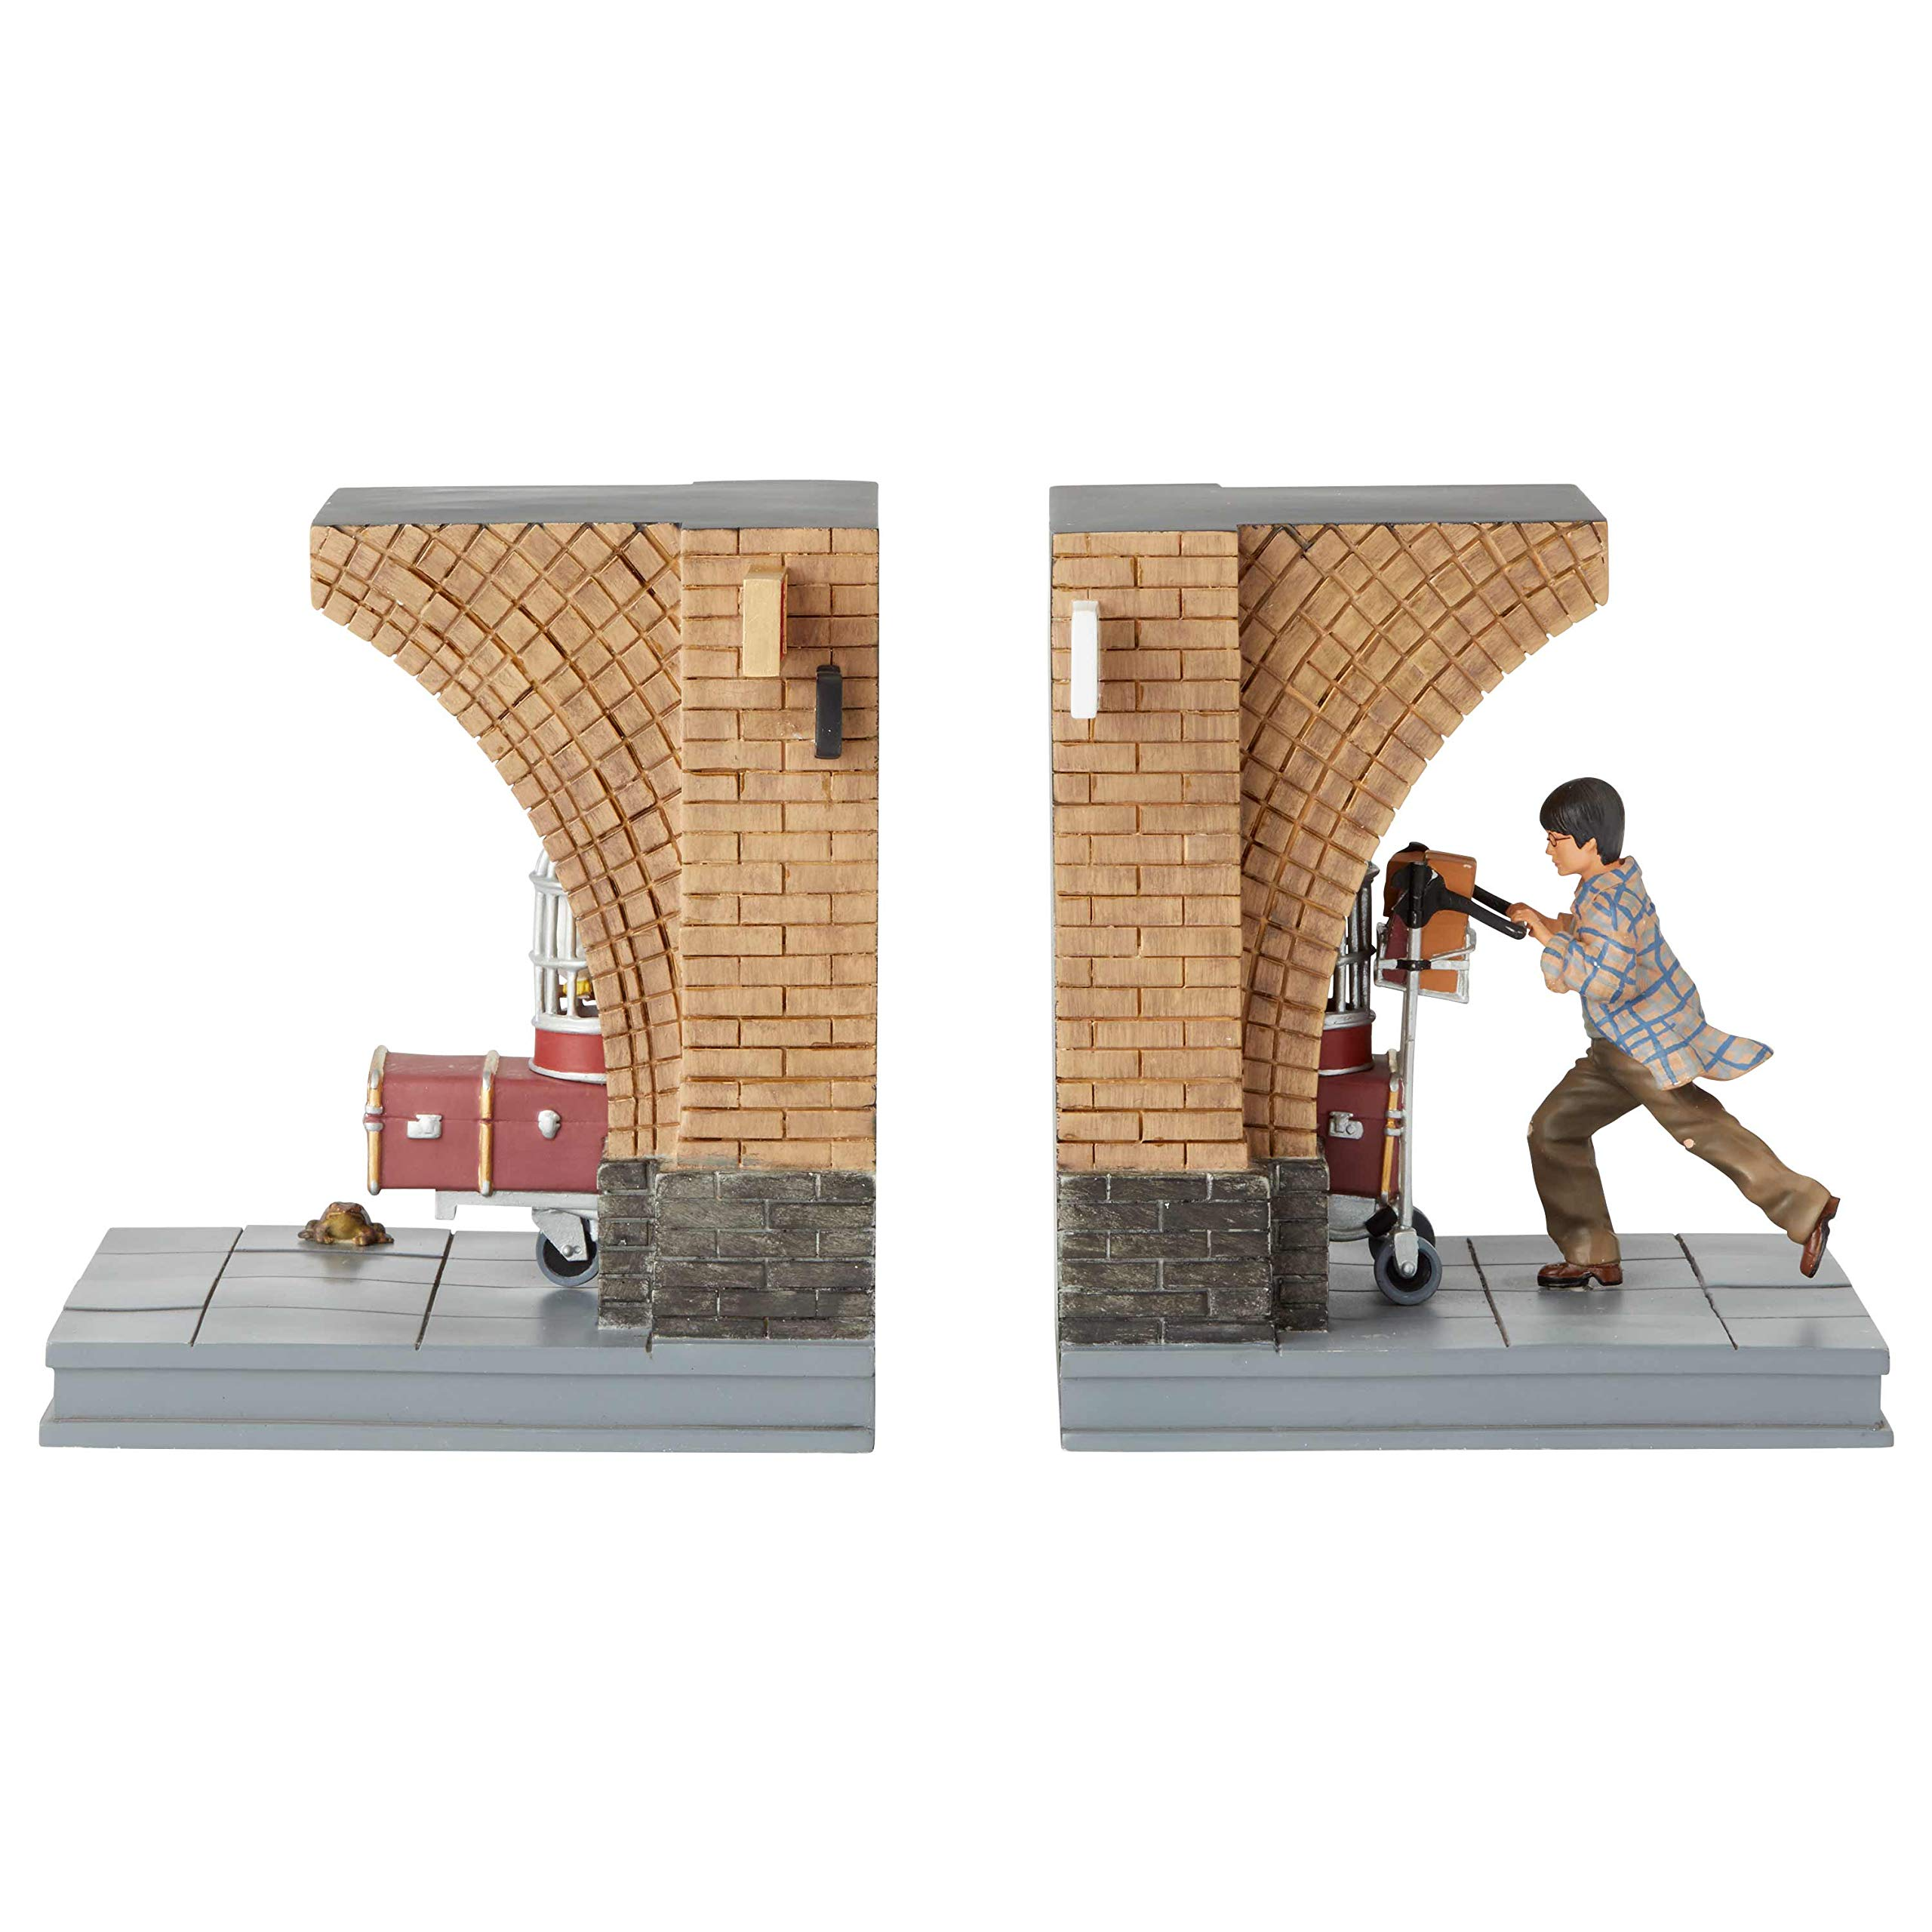 Enesco The Wizarding World of Harry Potter Platform 9 3/4 Decorative Bookends, 7.01 Inch by Enesco